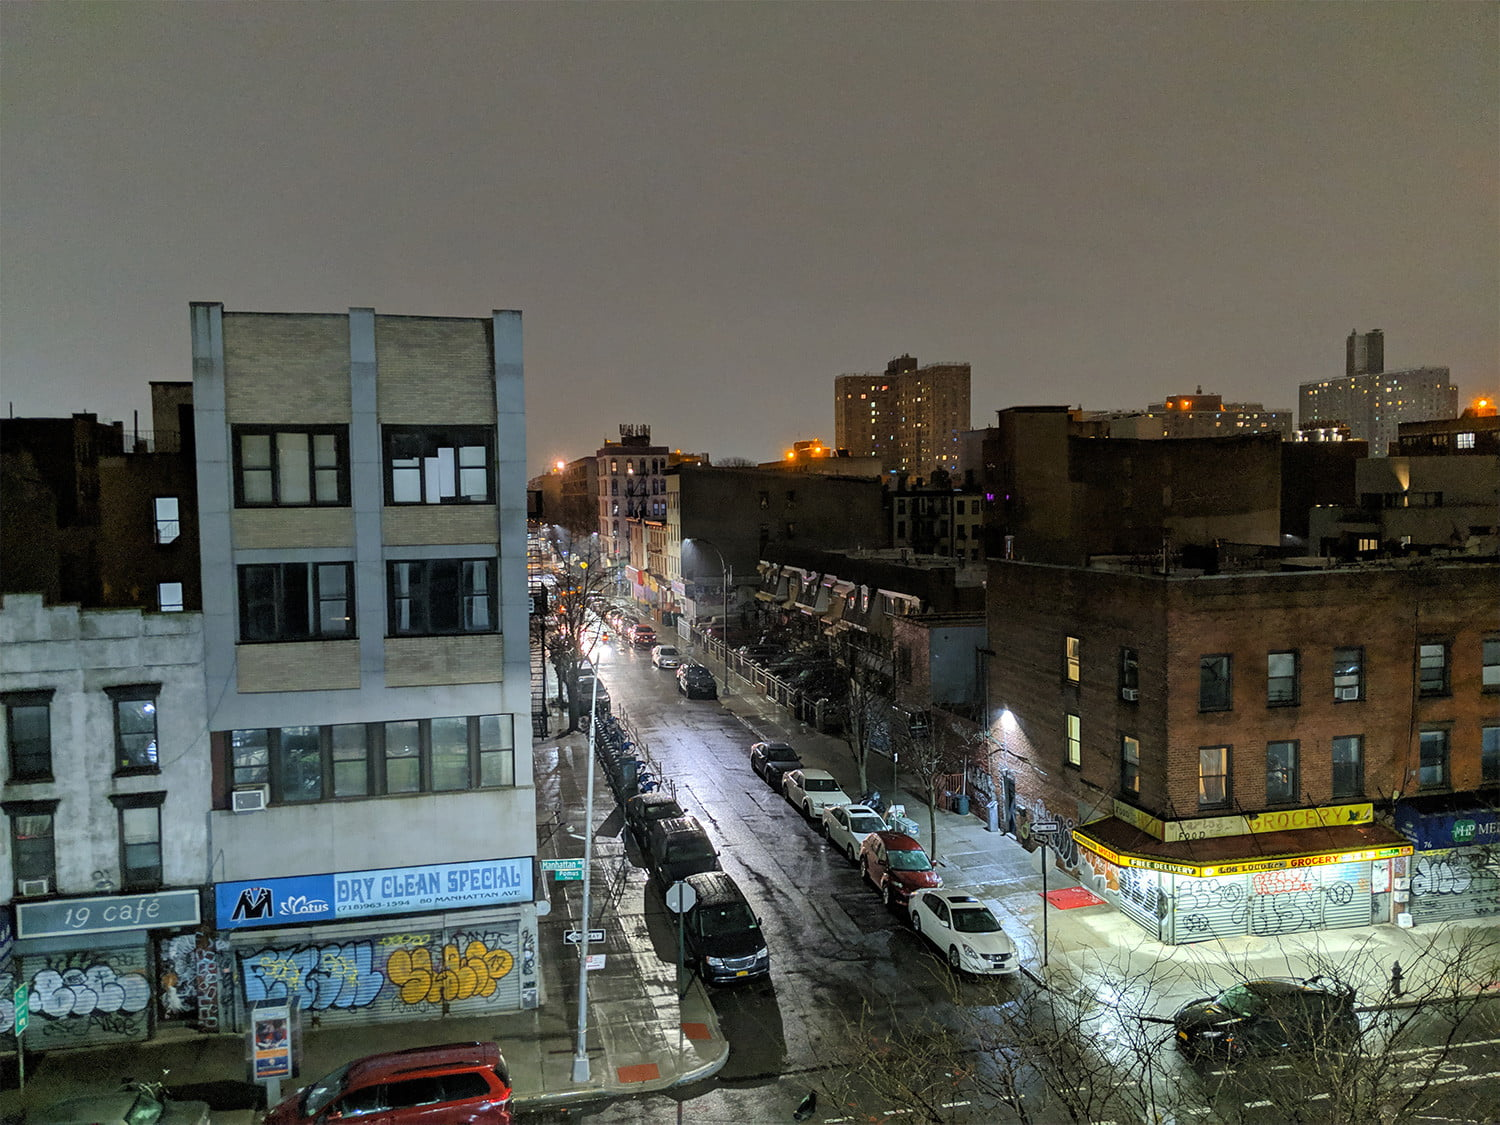 lg g8 thinq review comps pixel 3 night